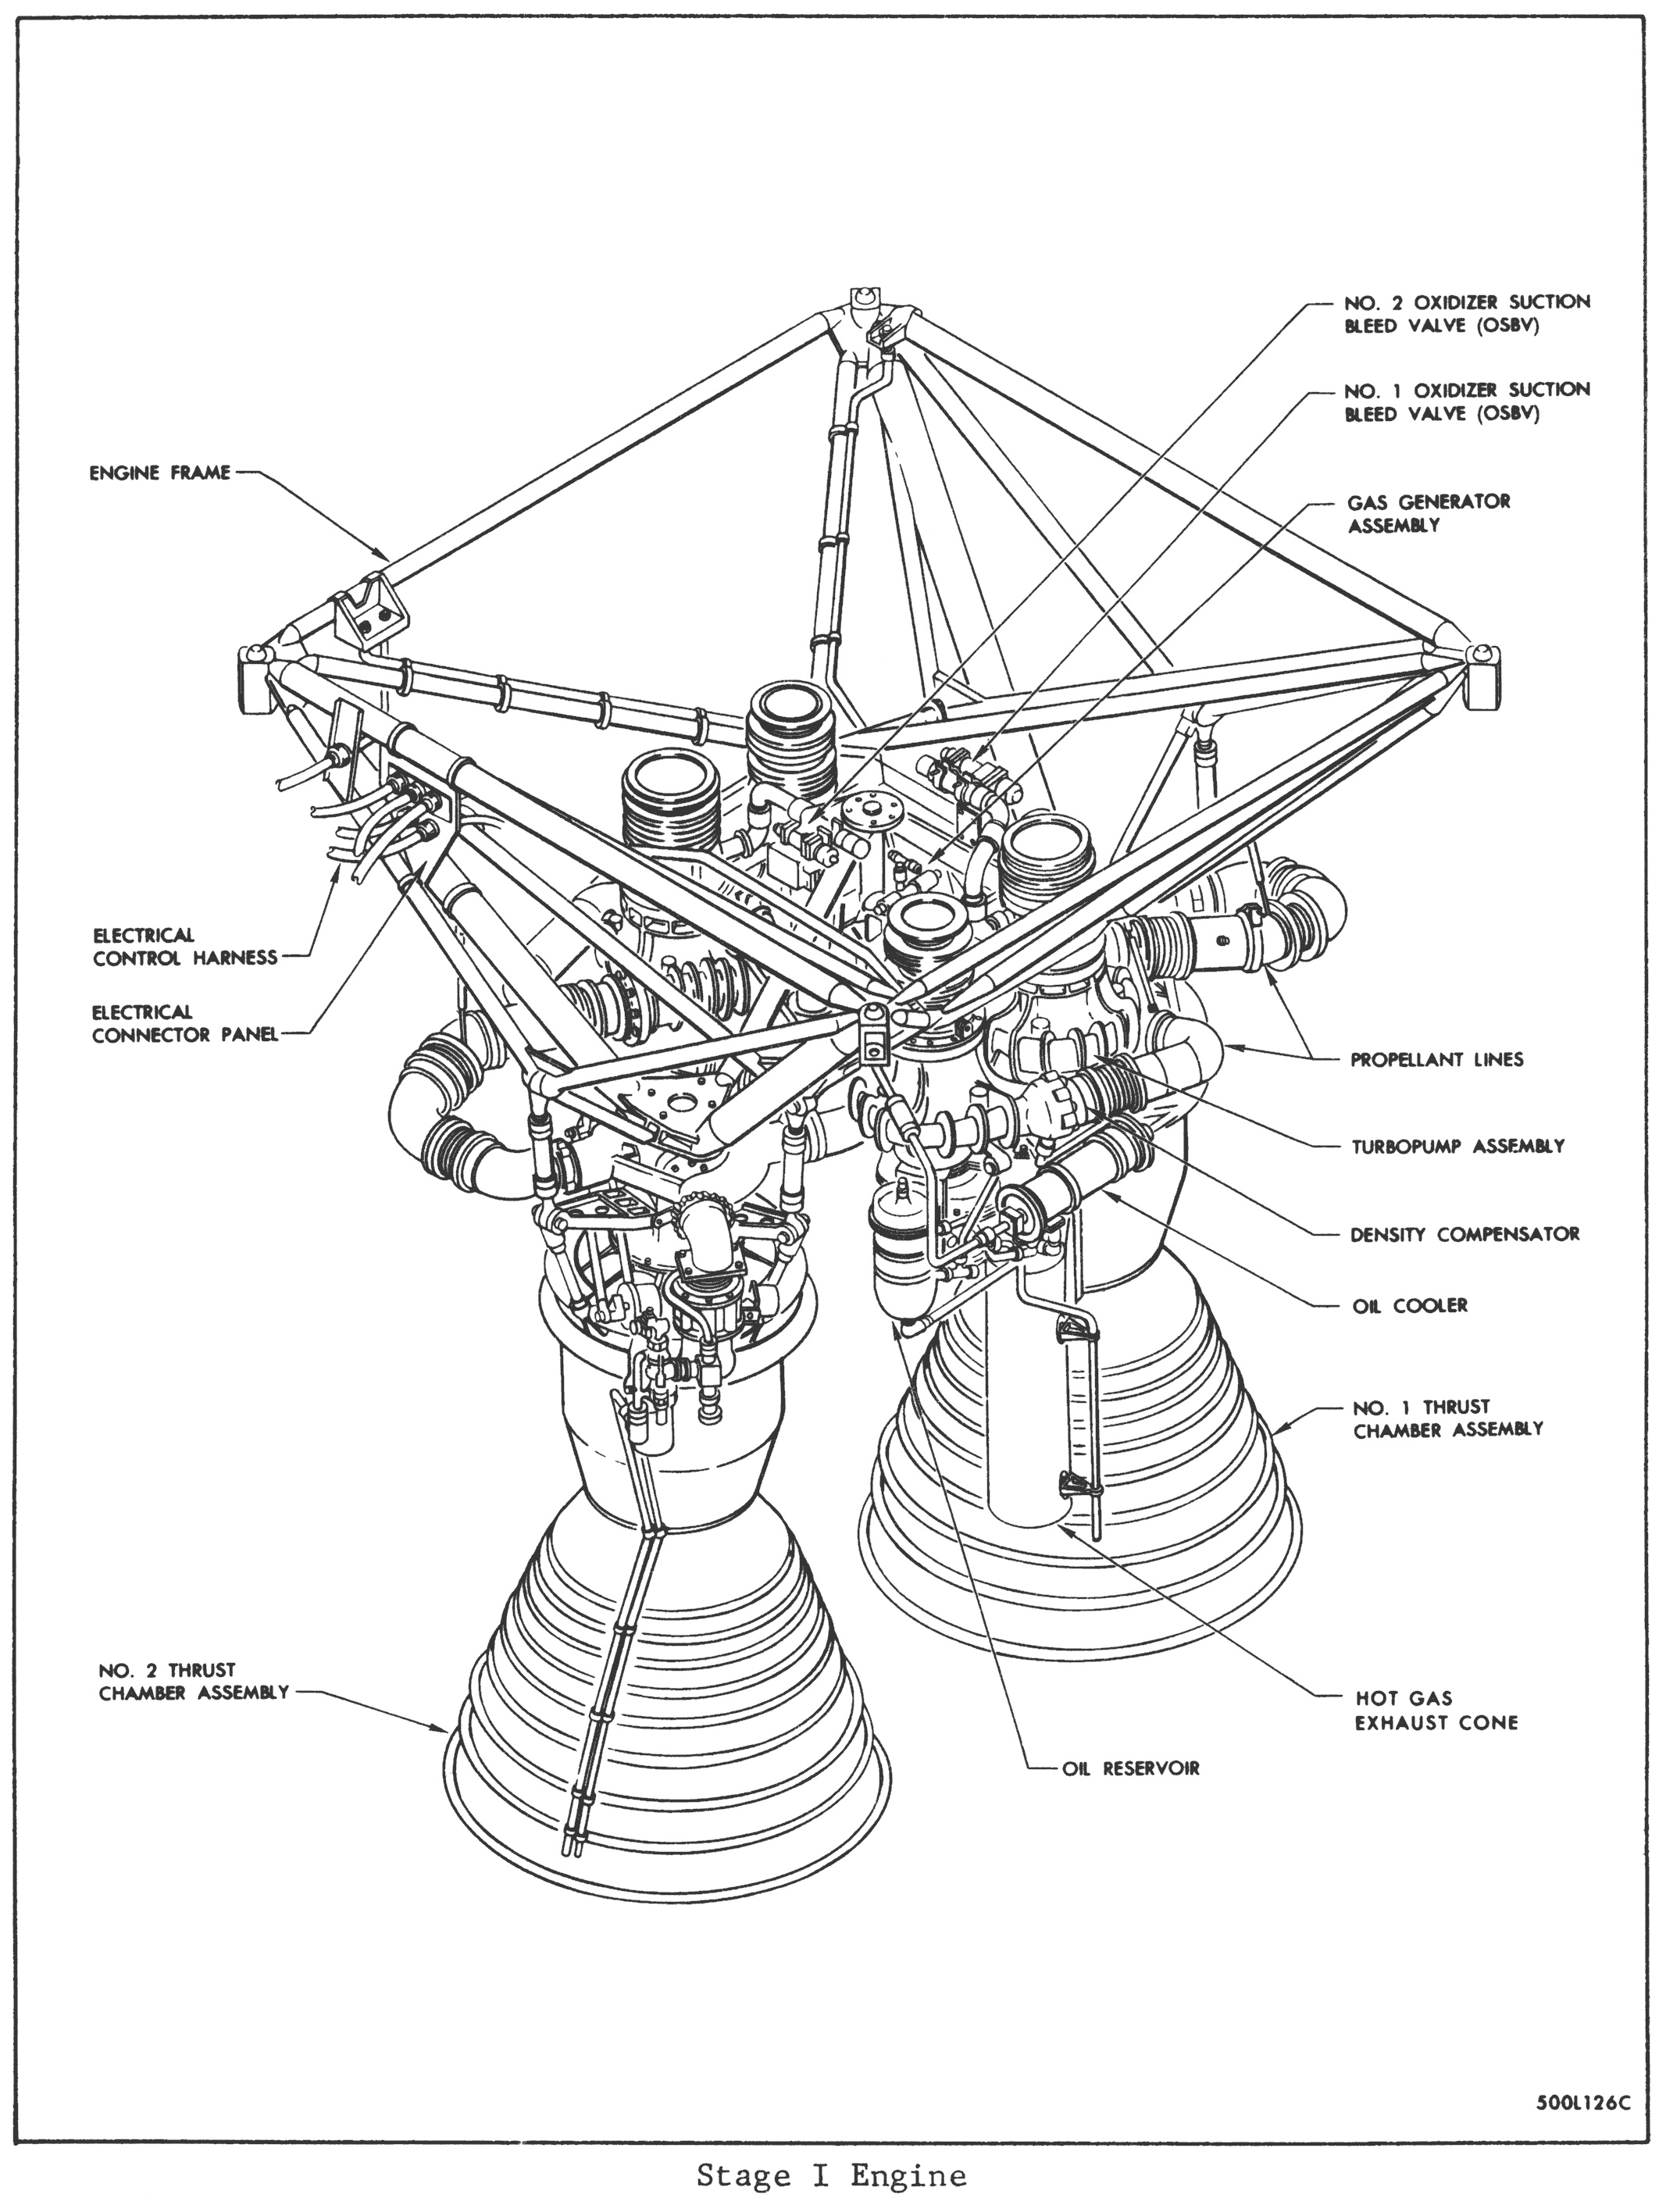 titan i first stage engines (lr 87)  diagram of the first gas engine #12